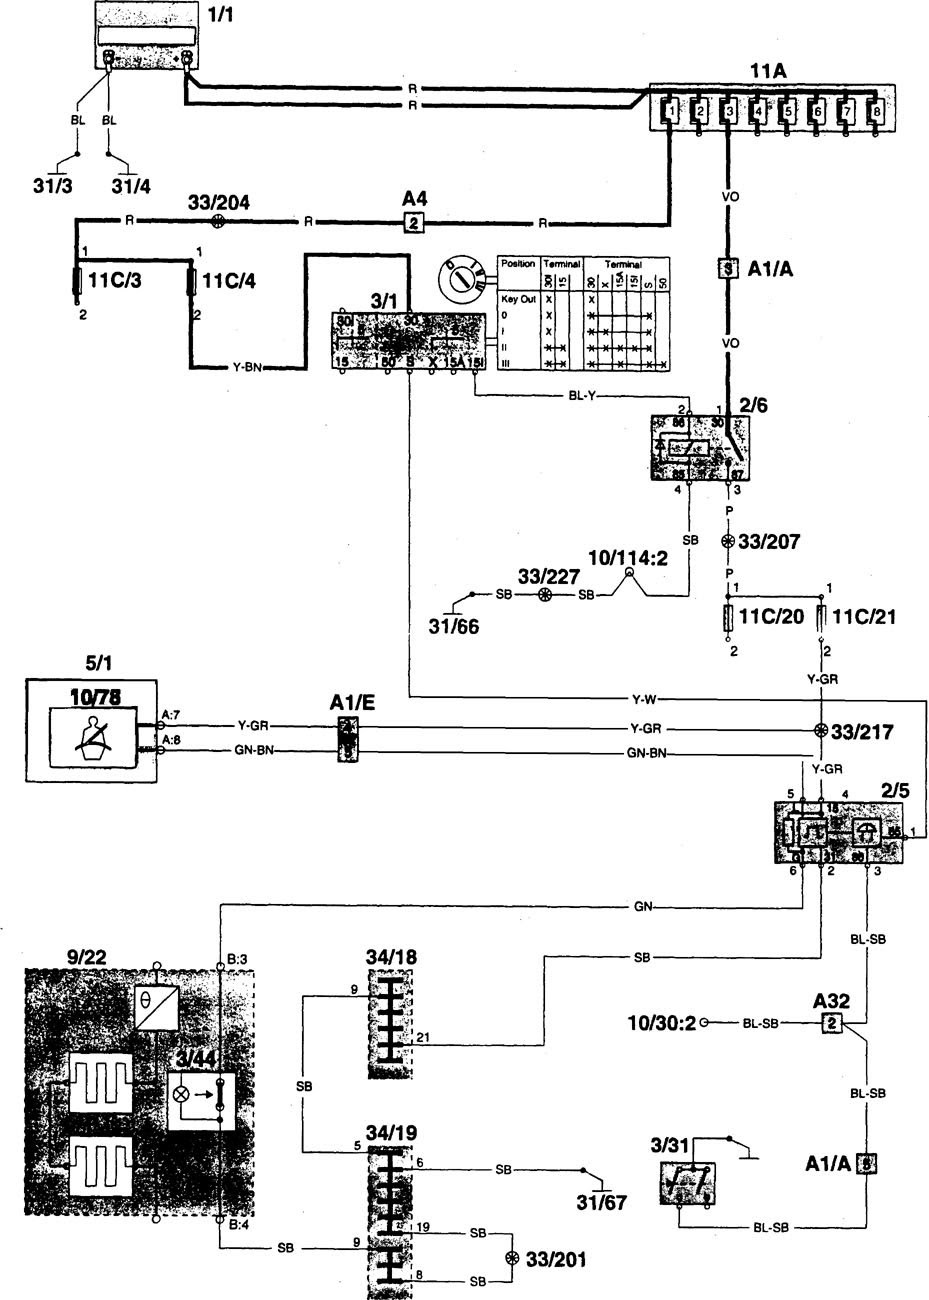 Ford Fusion Engine Diagram - Wiring Diagram